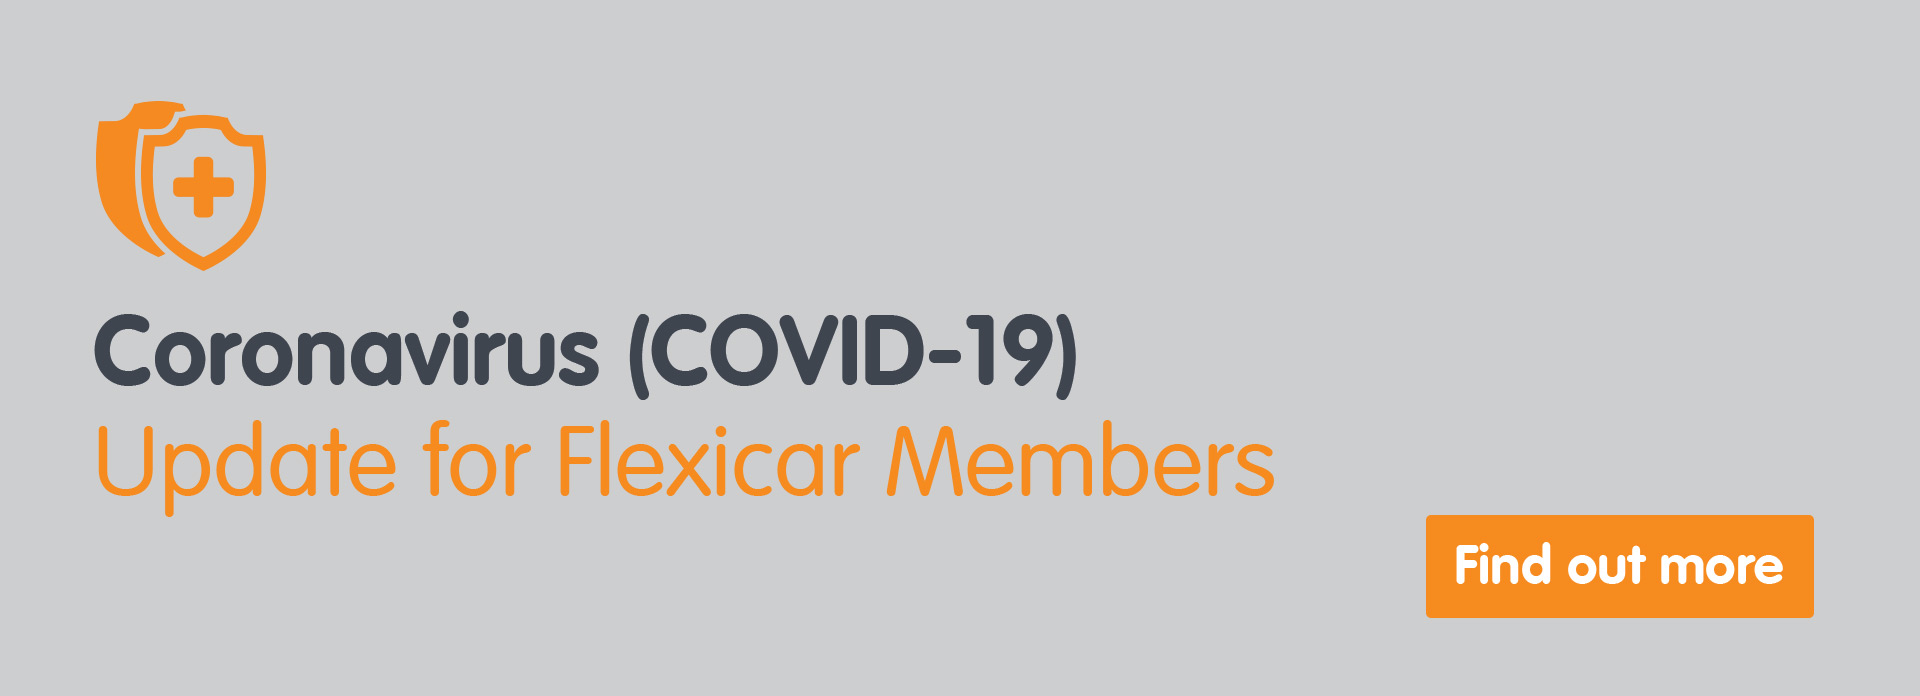 Corona Virus Update for Flexicar Members